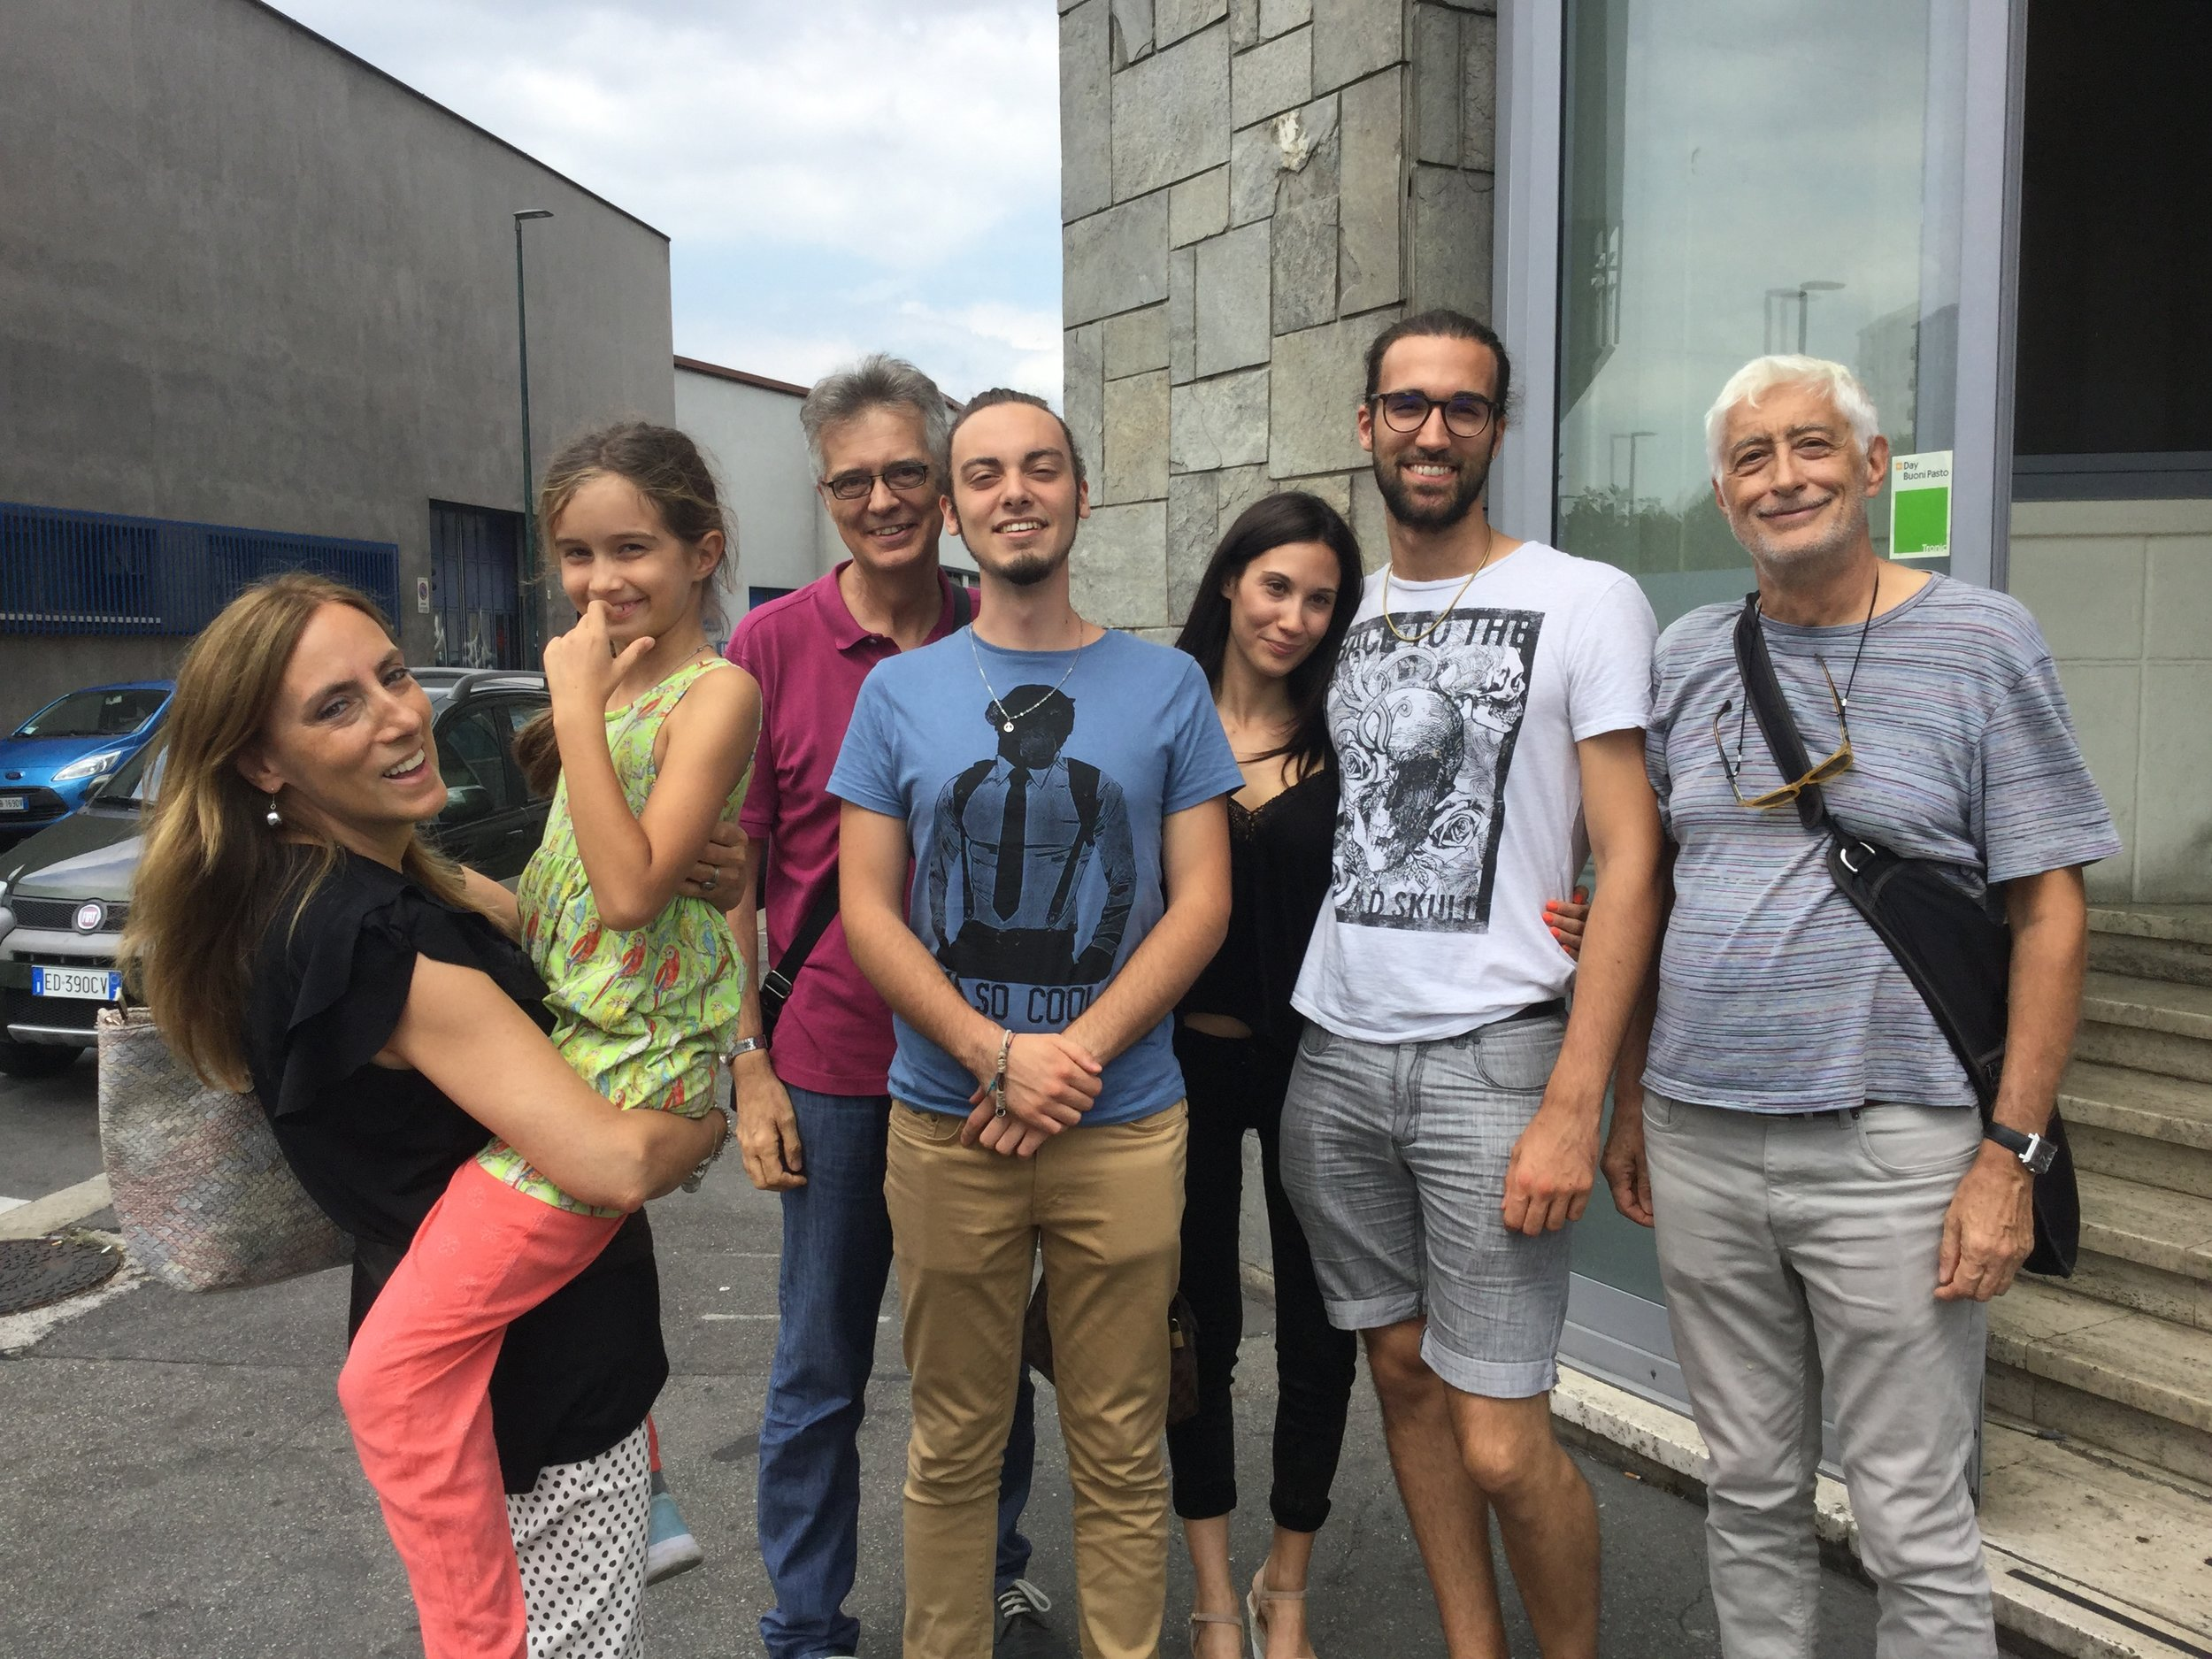 Believe it or not we went to have some sushi in Torino and it was great. Here we are with our bellies full! Lidia with Lili, Manuel, Giuliano, Sonia, Amedeo and Dante.